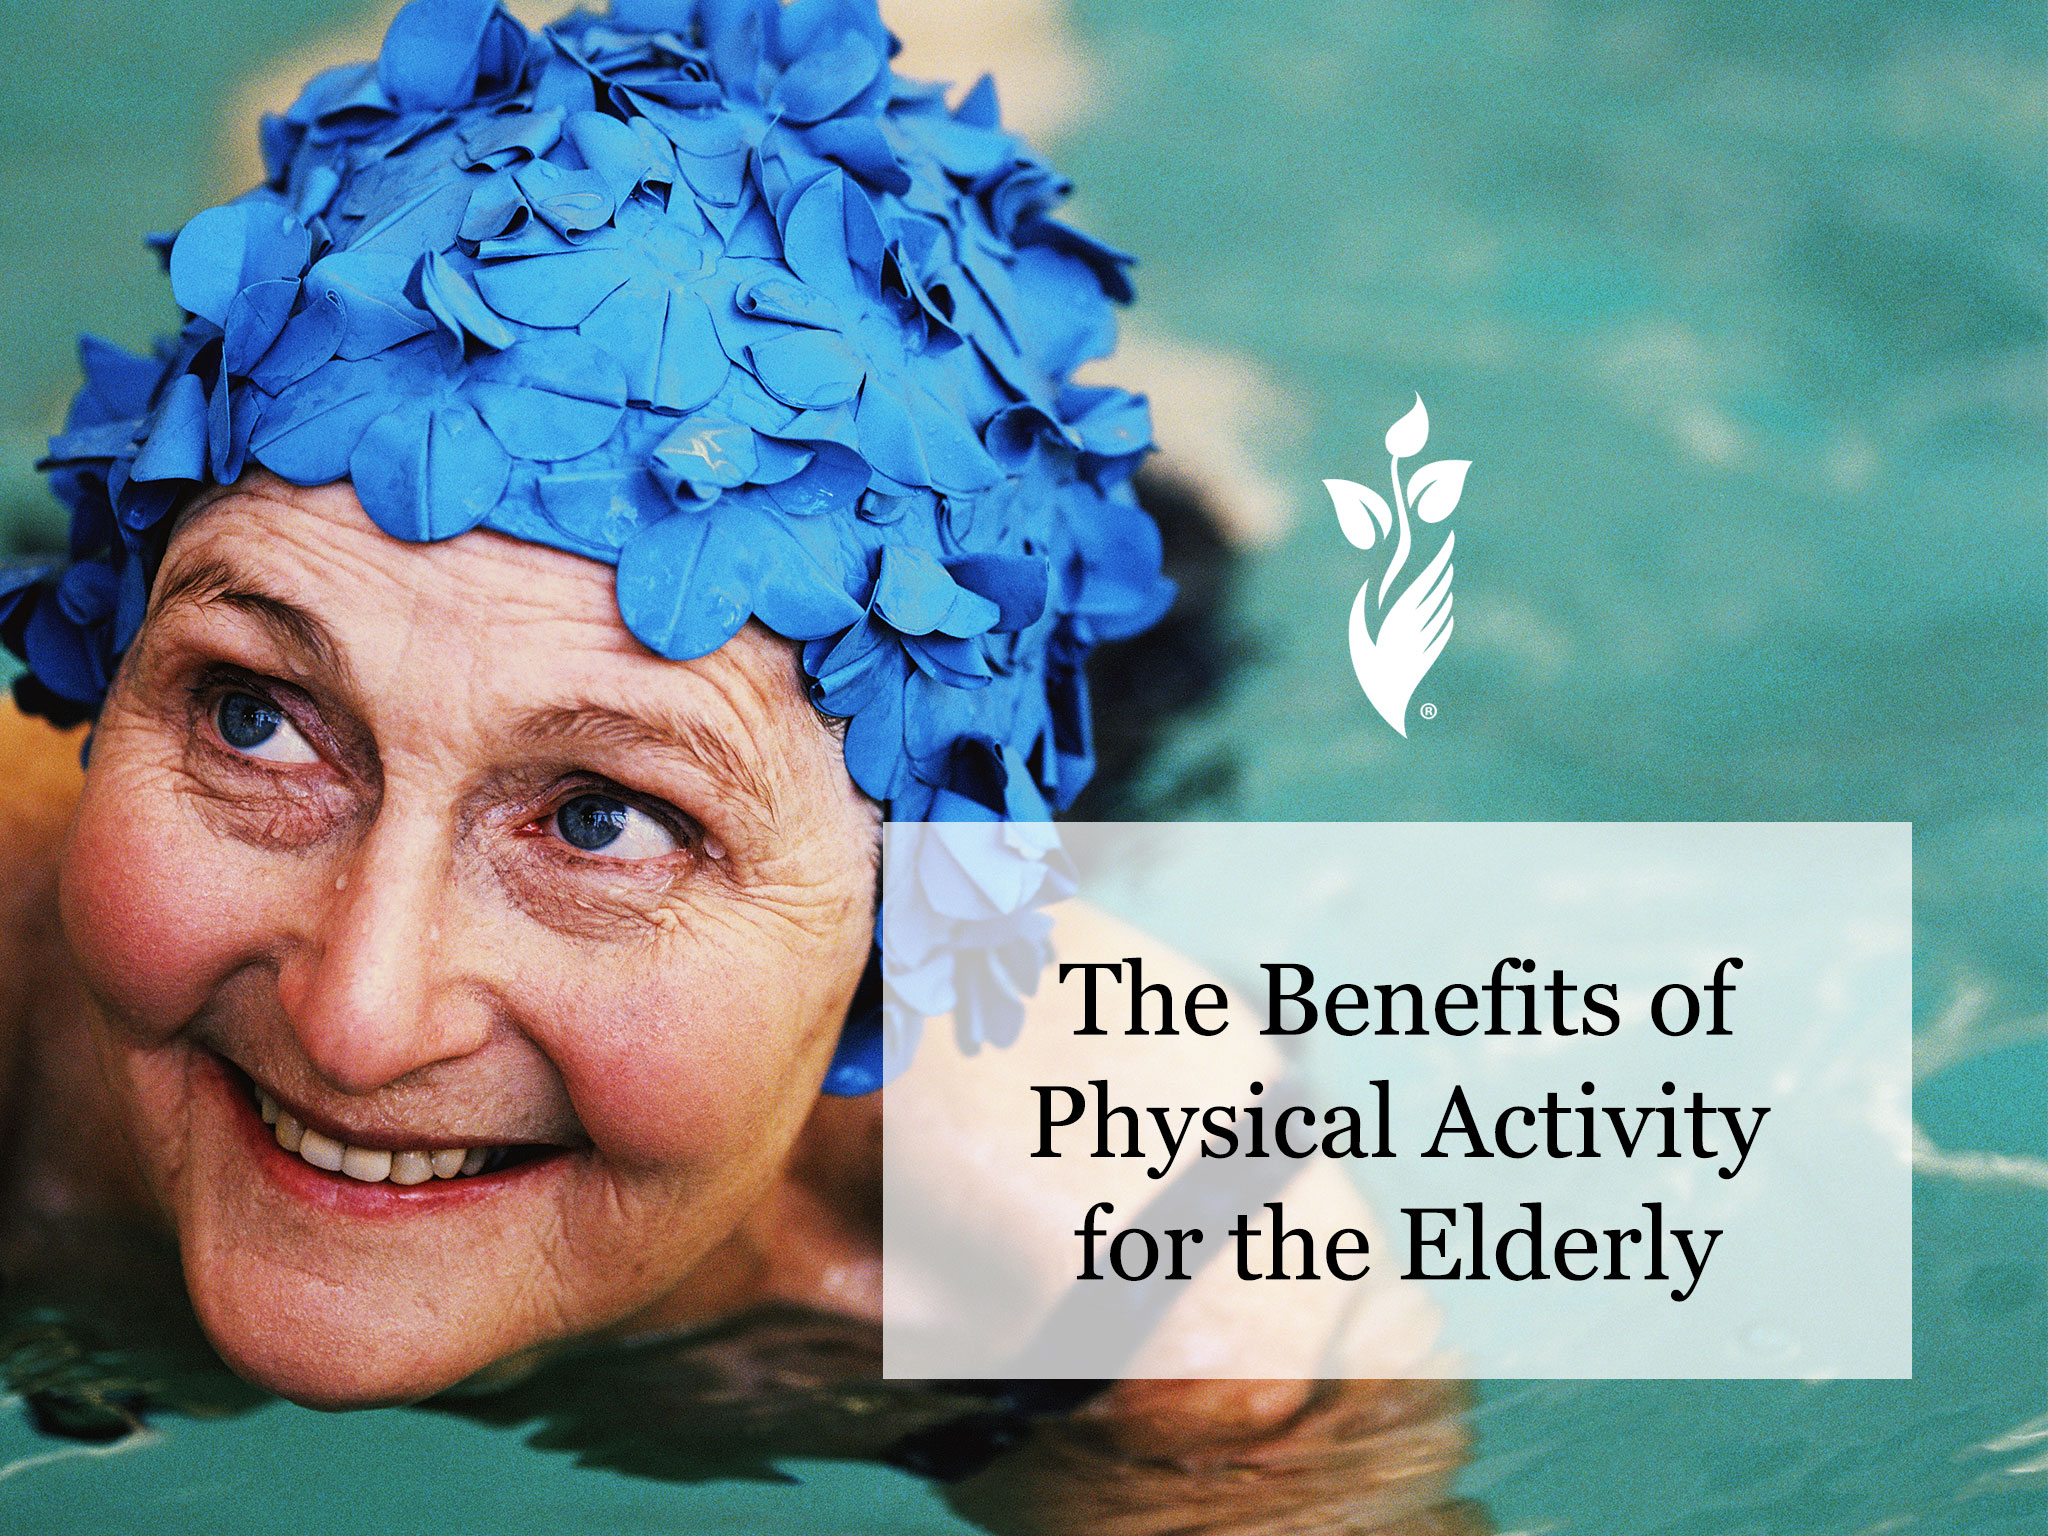 The Benefits of Physical Activity for the Elderly